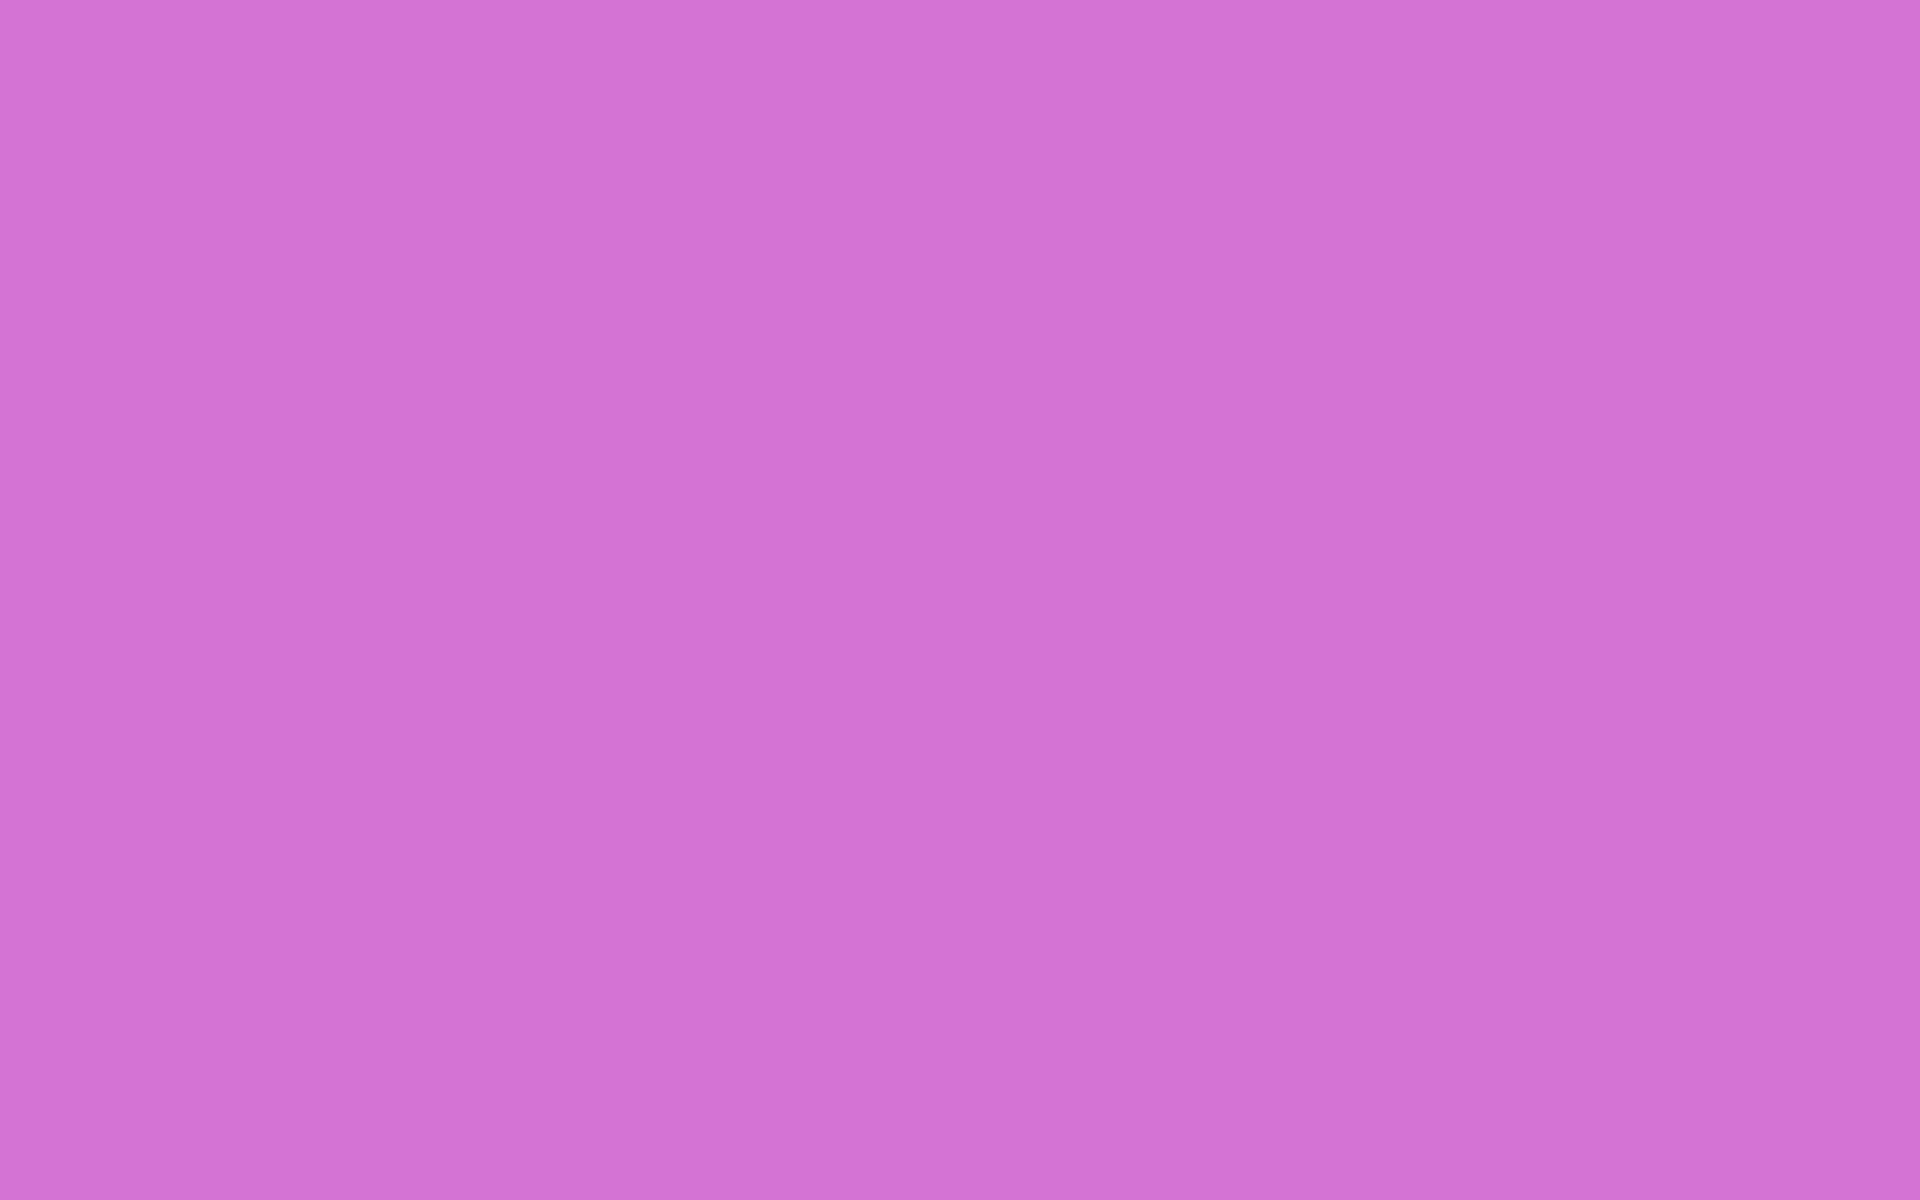 1920x1200 French Mauve Solid Color Background